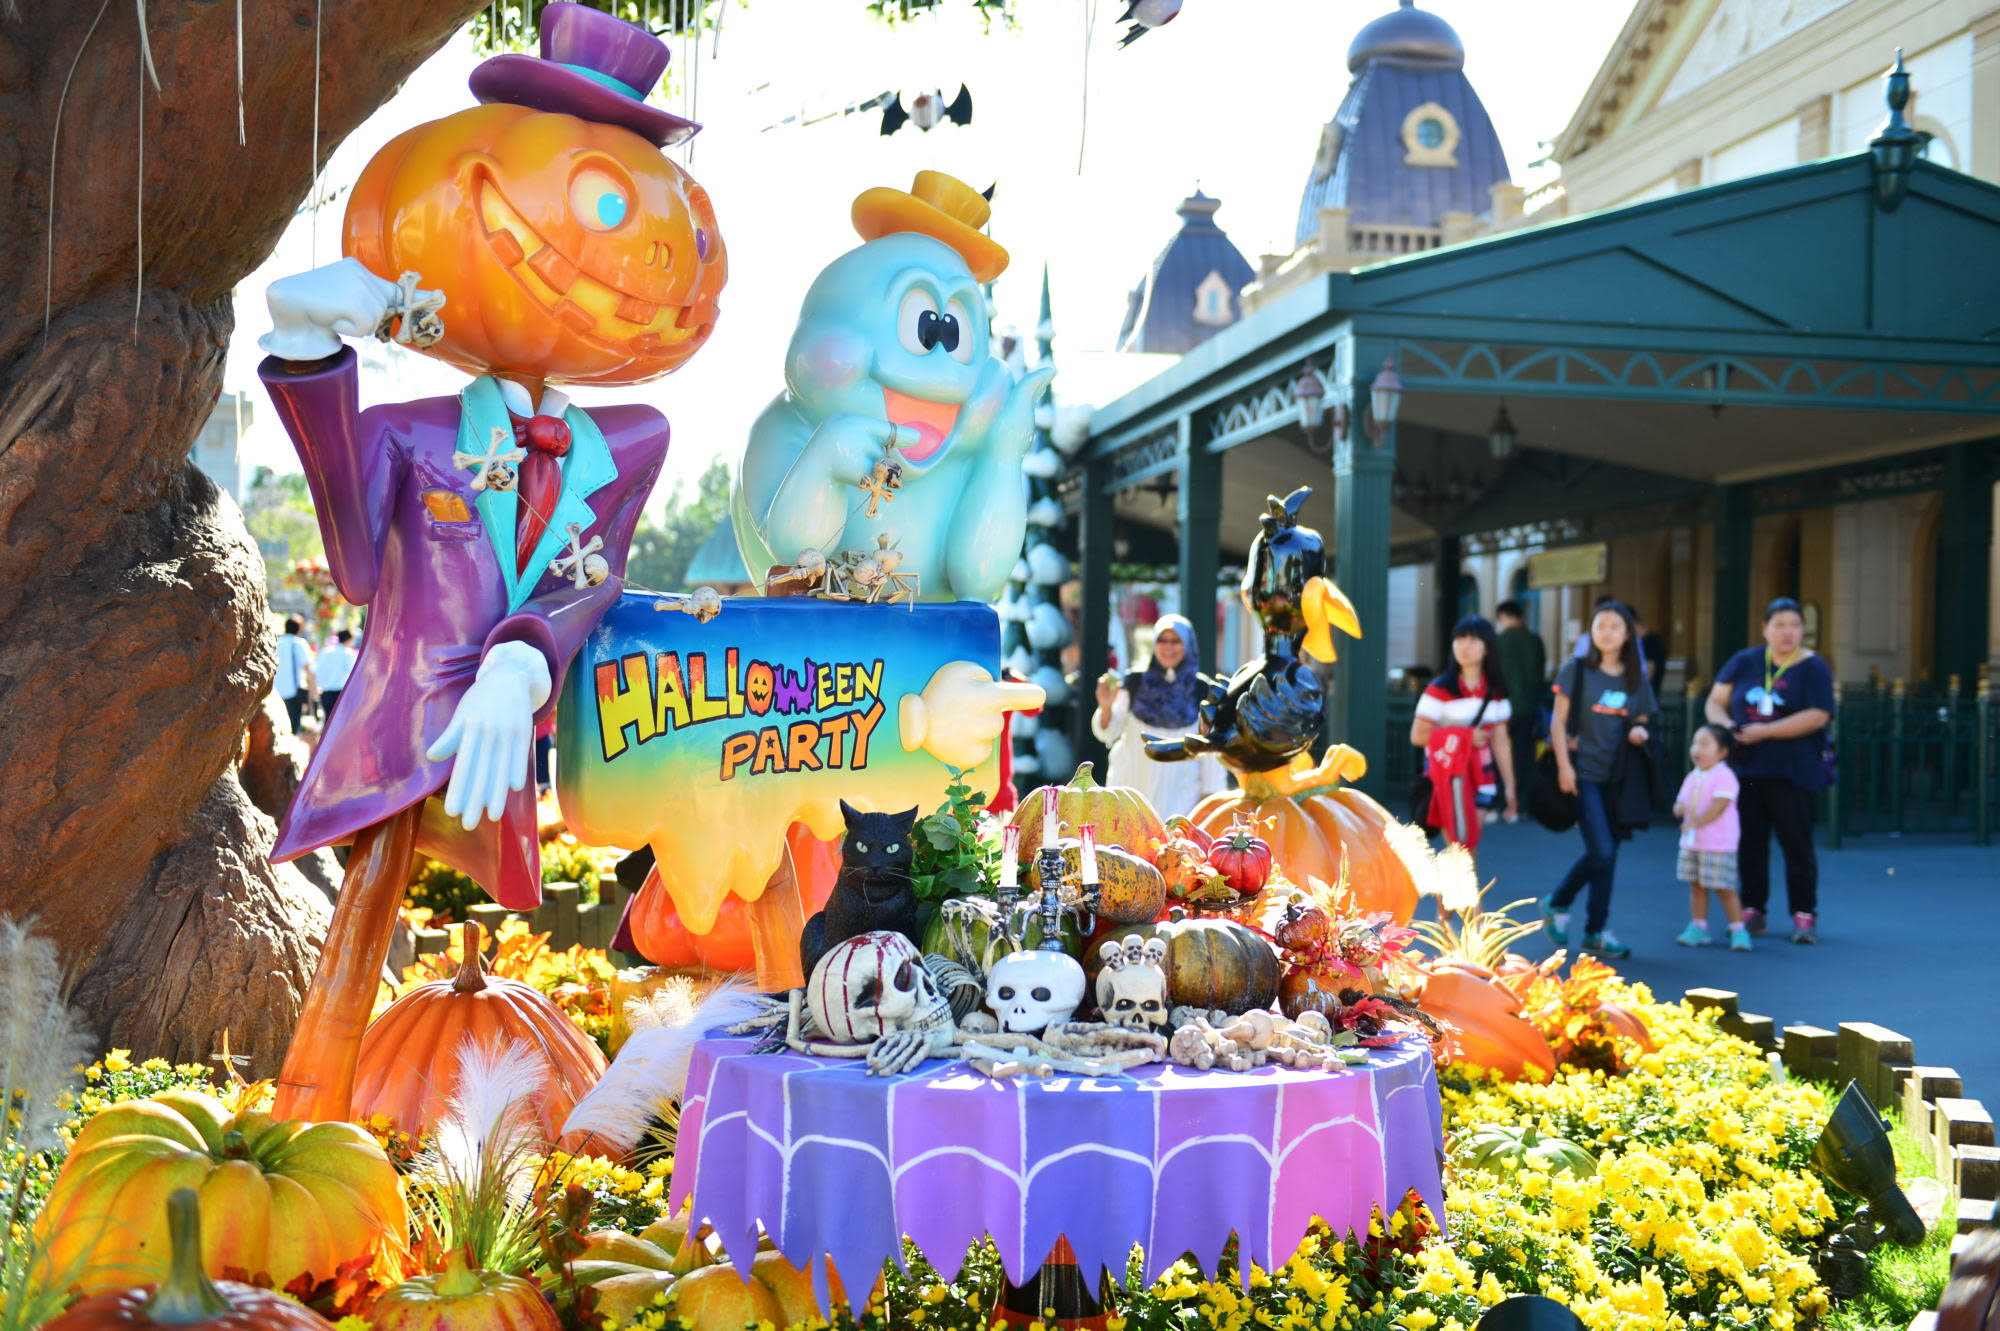 Halloween Party display at Everland